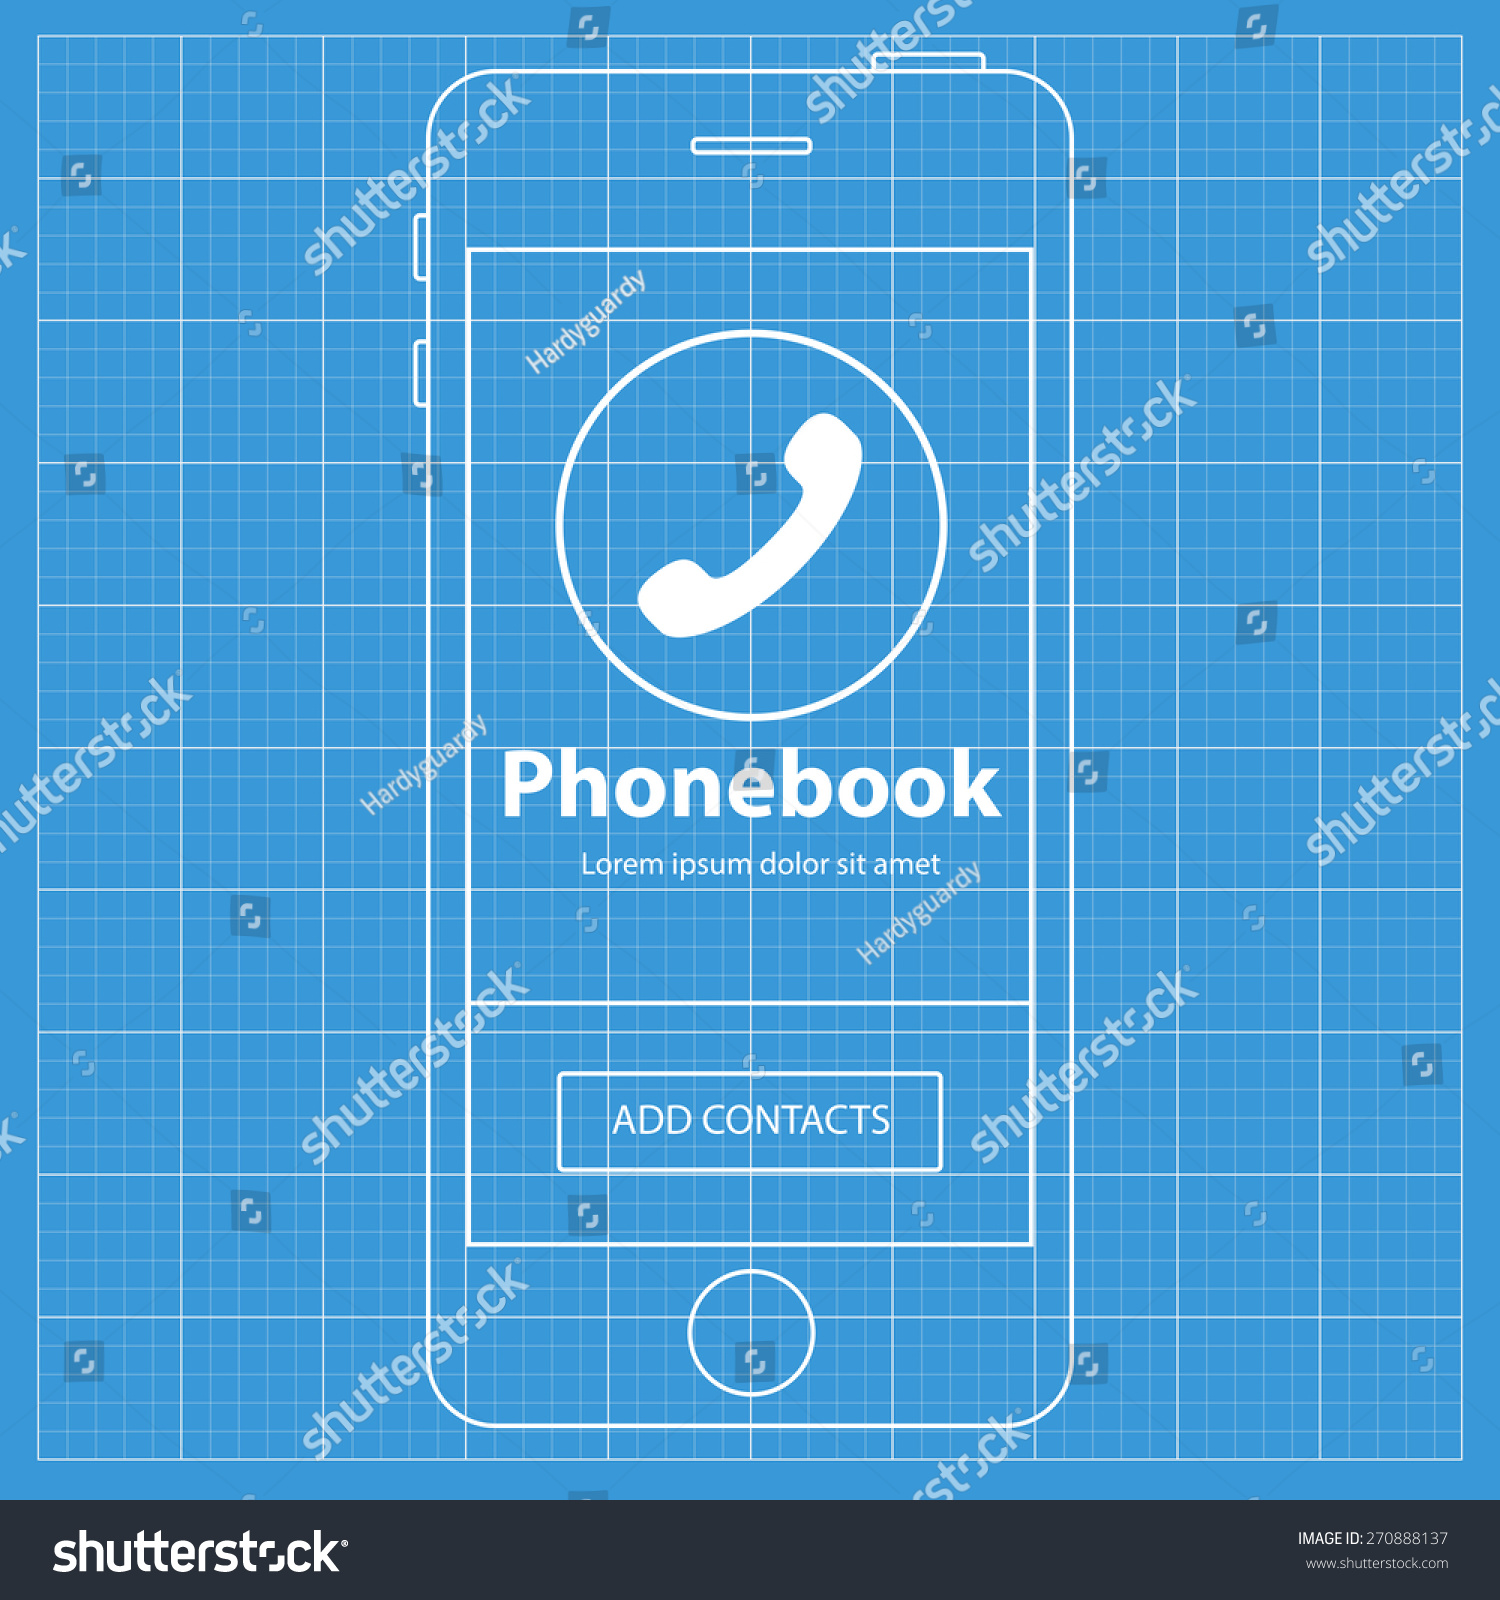 Mobile blueprint wireframe app screen phonebook vectores en stock mobile blueprint wireframe app screen phonebook screen which can be used as a mockup for malvernweather